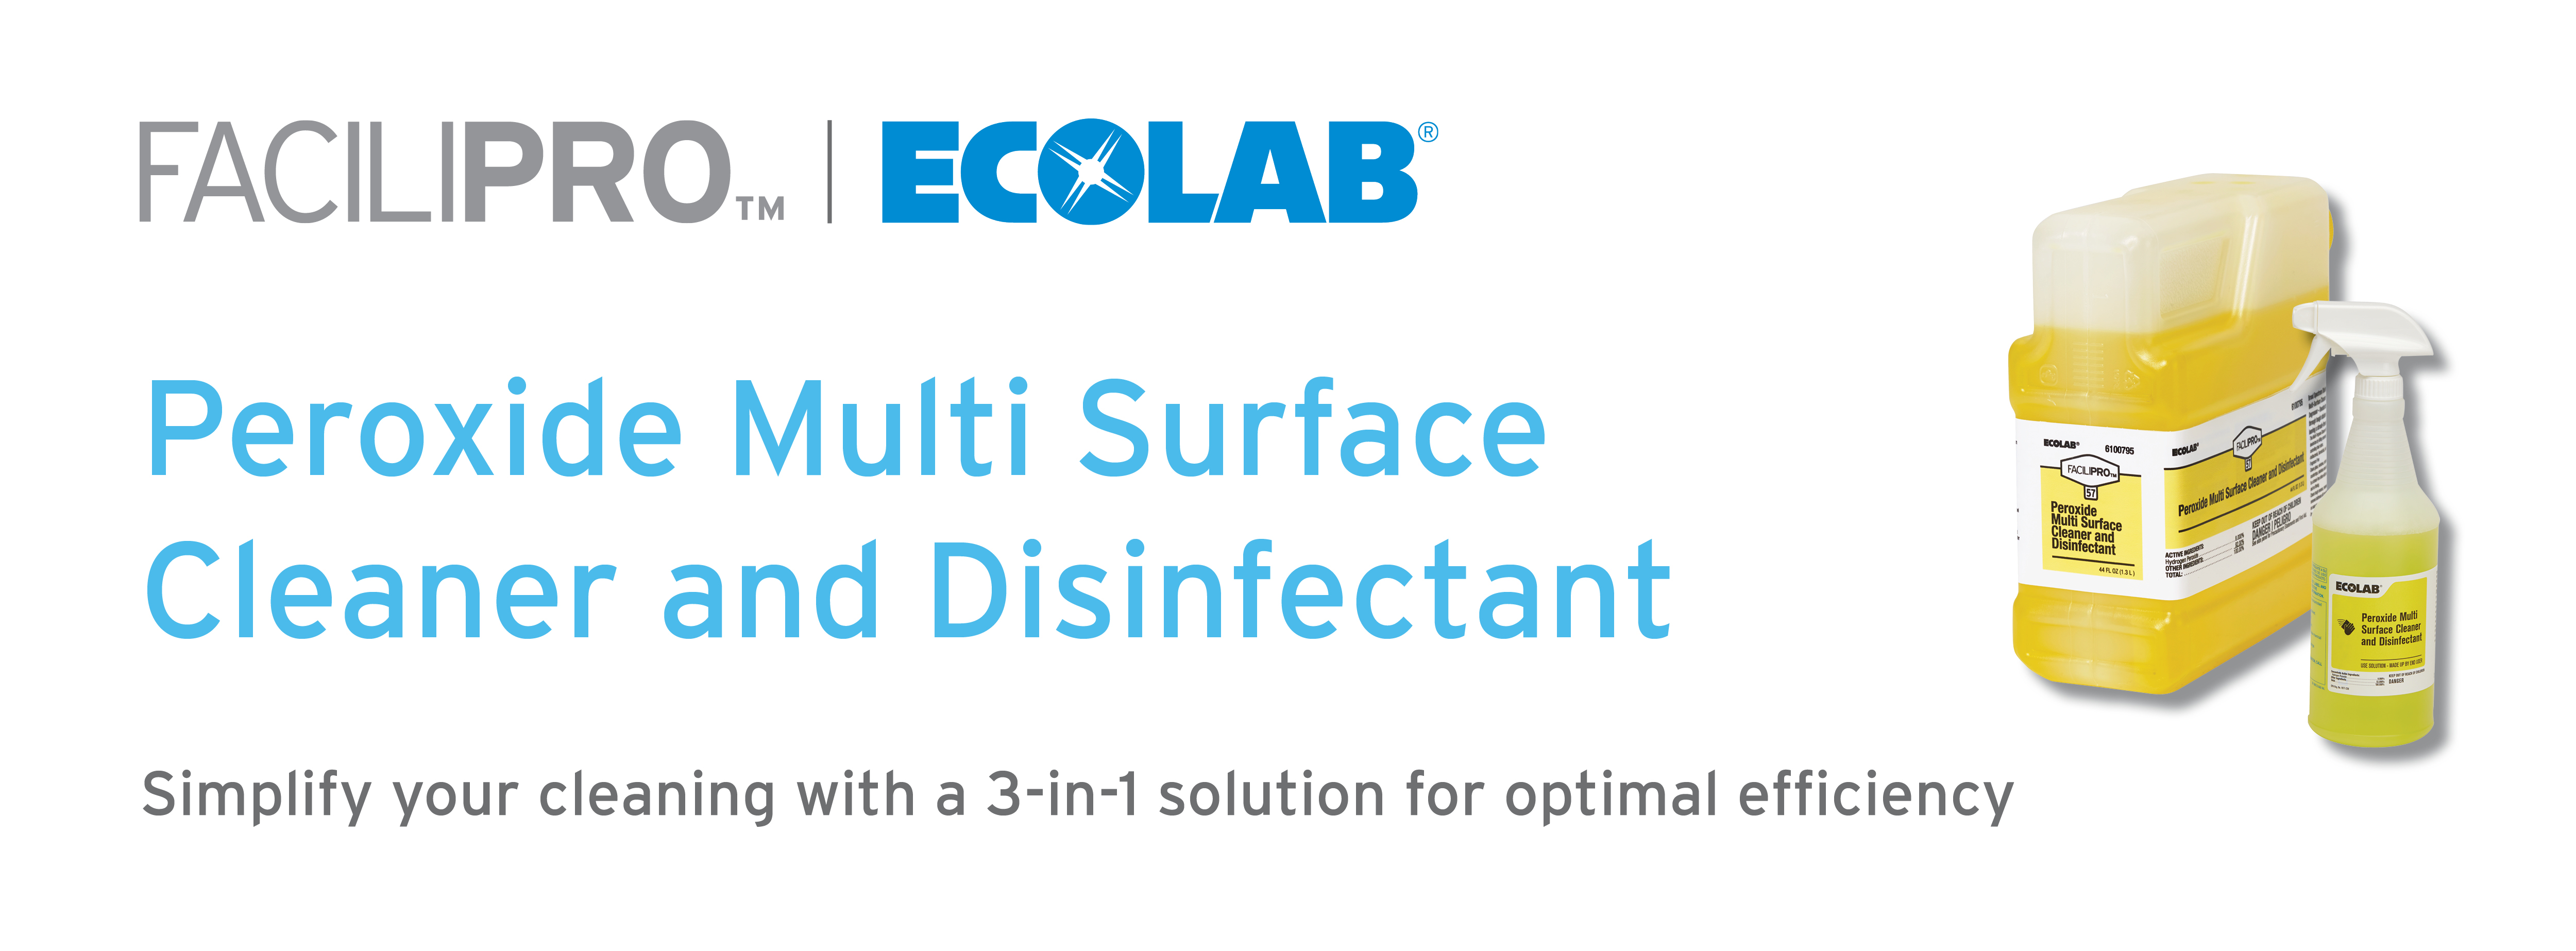 EcoLab Peroxide Multi Surface Cleaner and Disinfectant